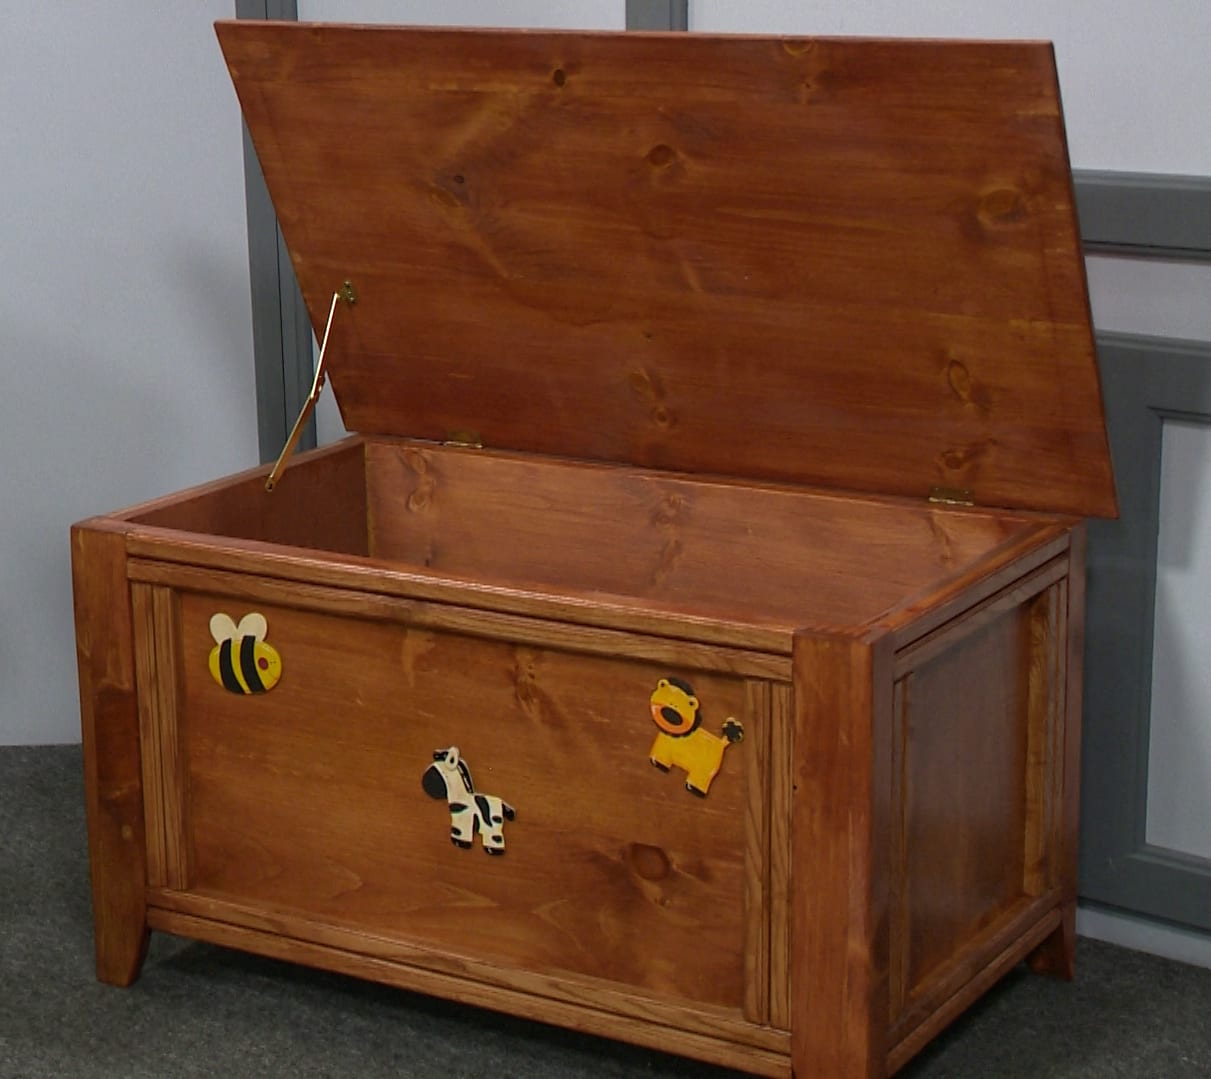 WOODEN CHEST <br/> Donated by: TURKEY HOLLOW CRAFTS, WOOD & KNITTED ITEMS <br/> Valued at: $225